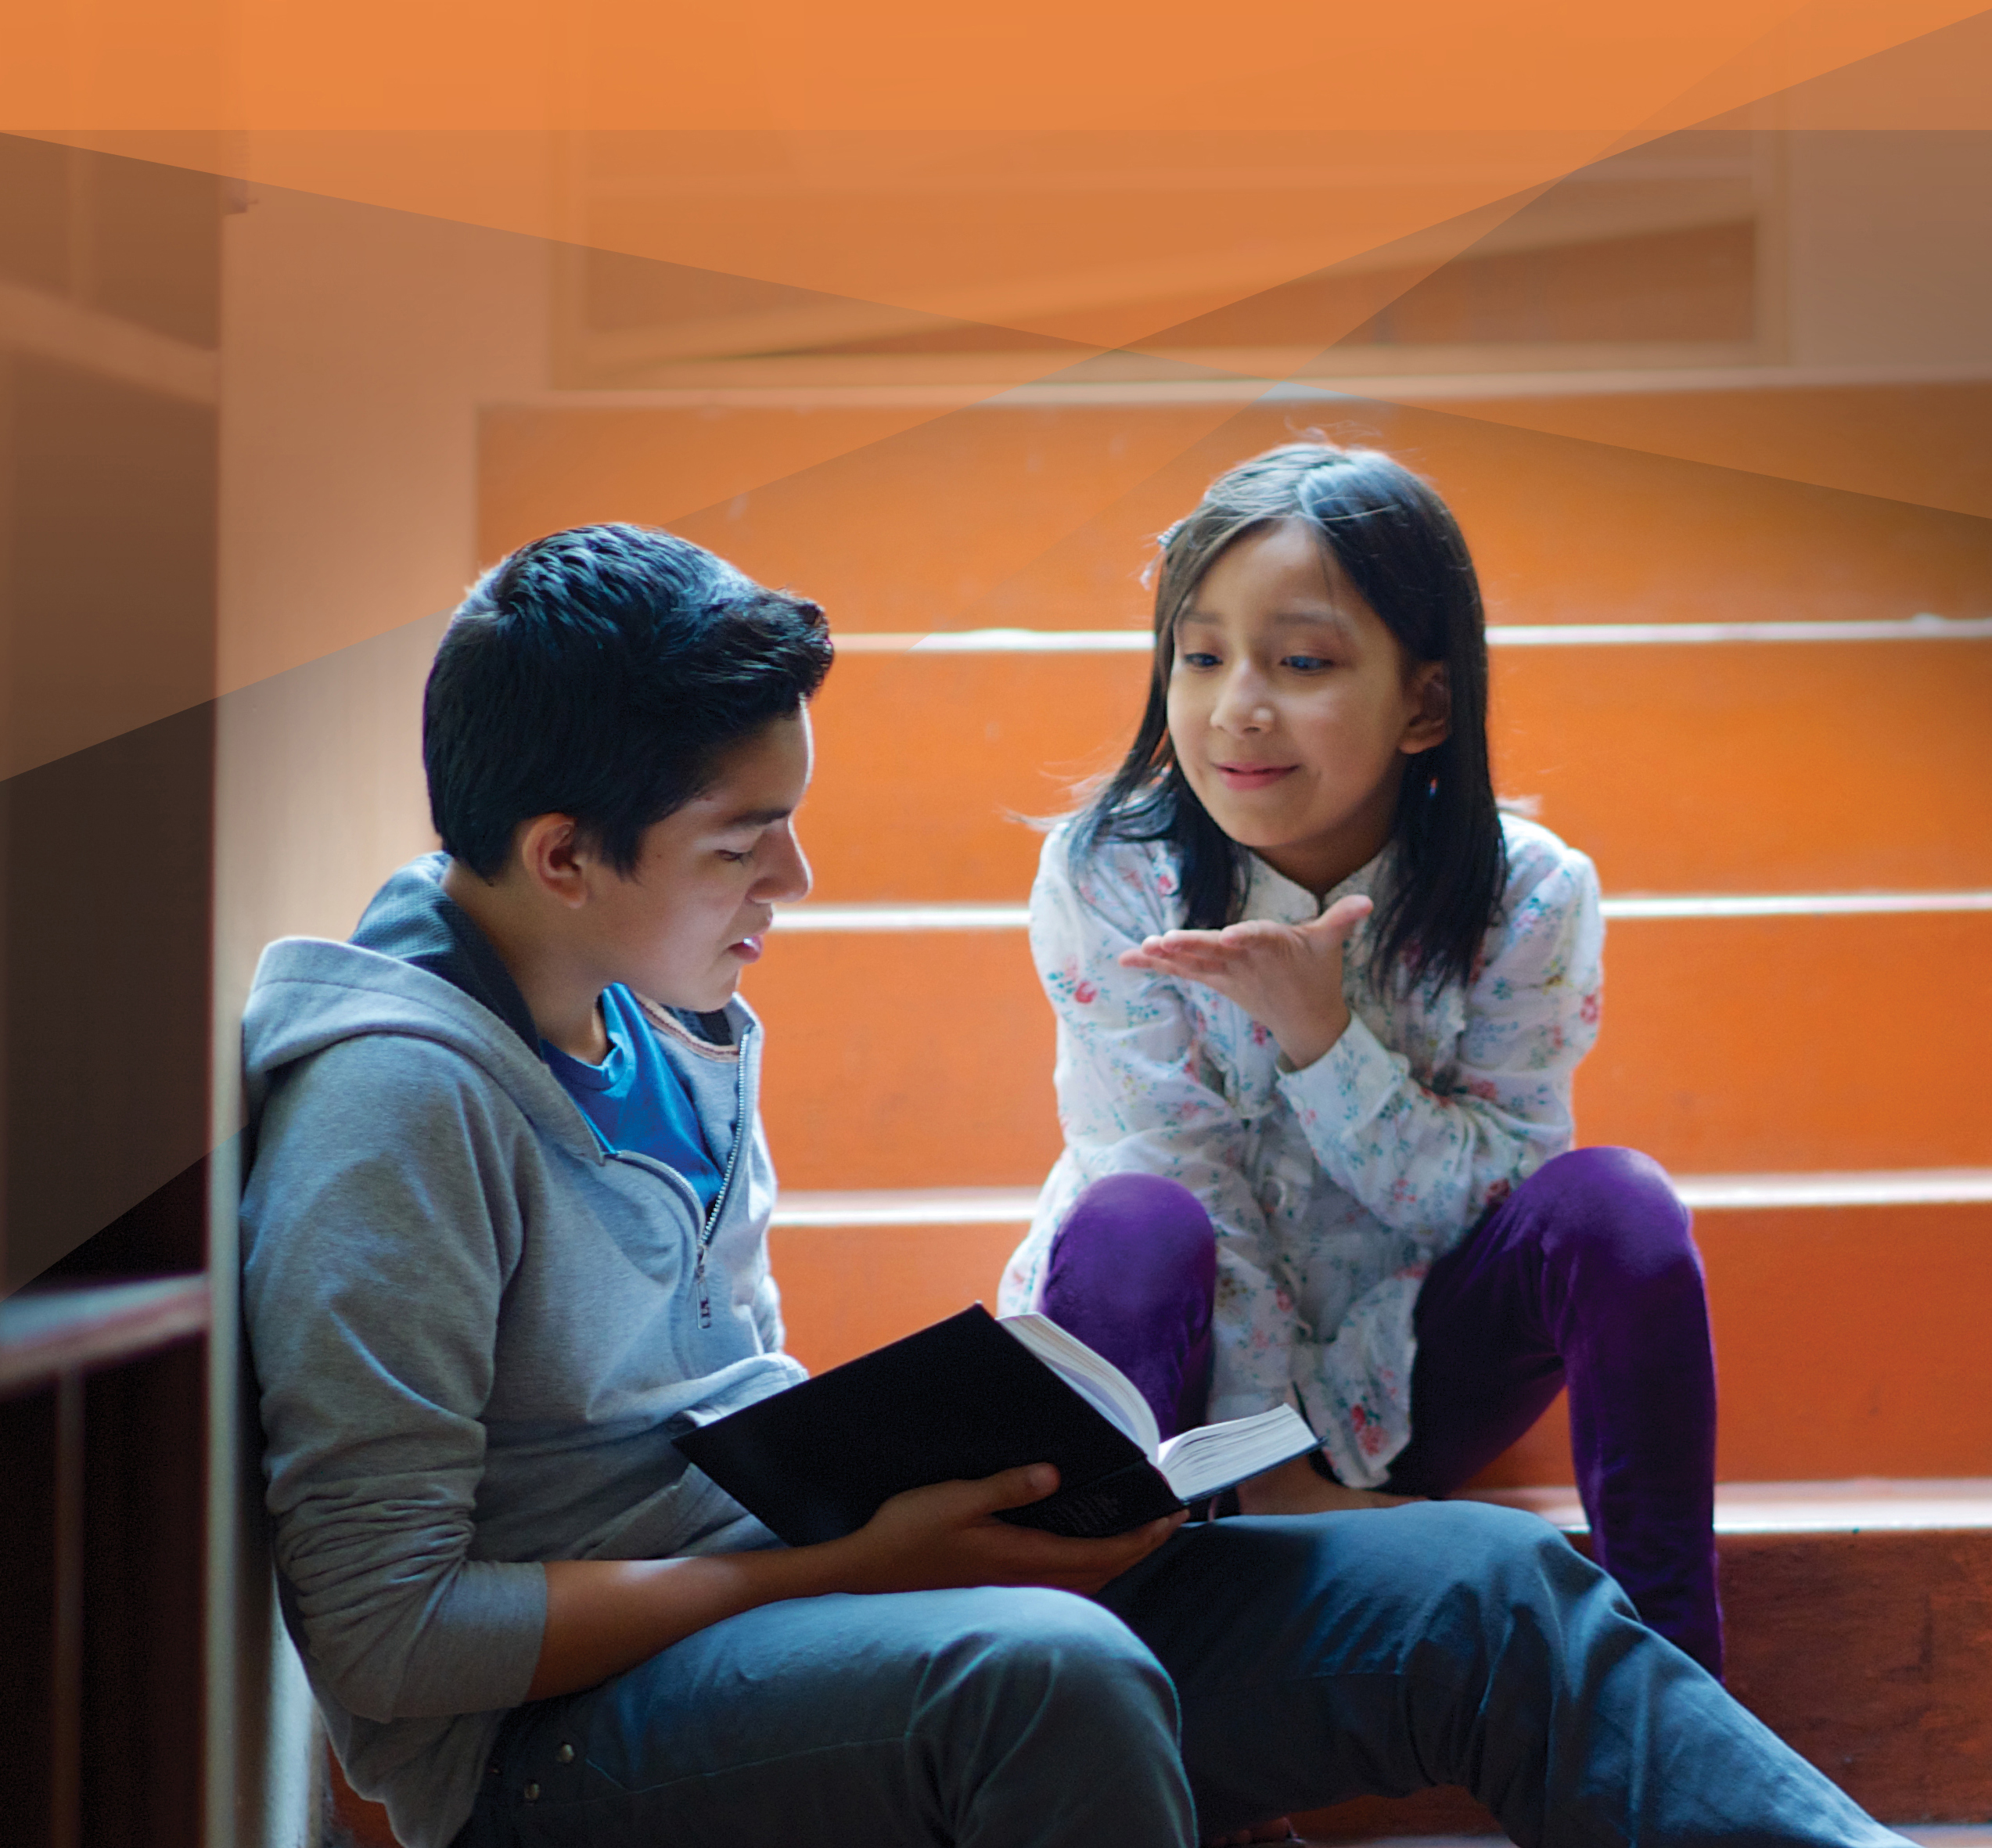 During 2020, the focus of study at home and at Church for children, youth, and adults will be the Book of Mormon.